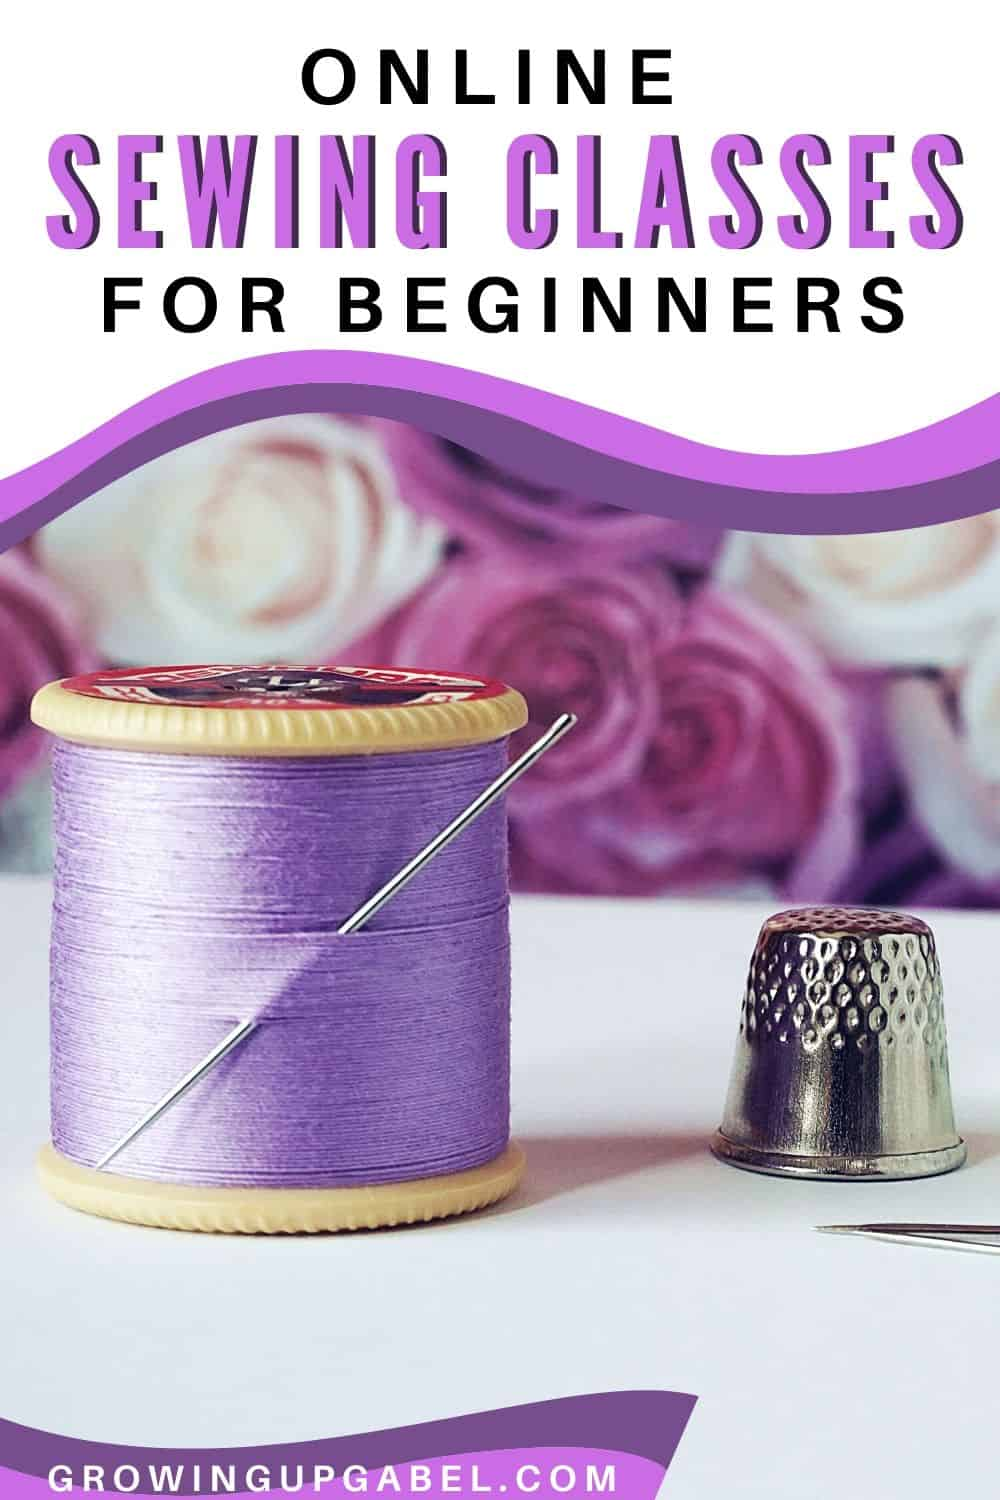 purple spool of thread with a thimble - online sewing classes for beginners